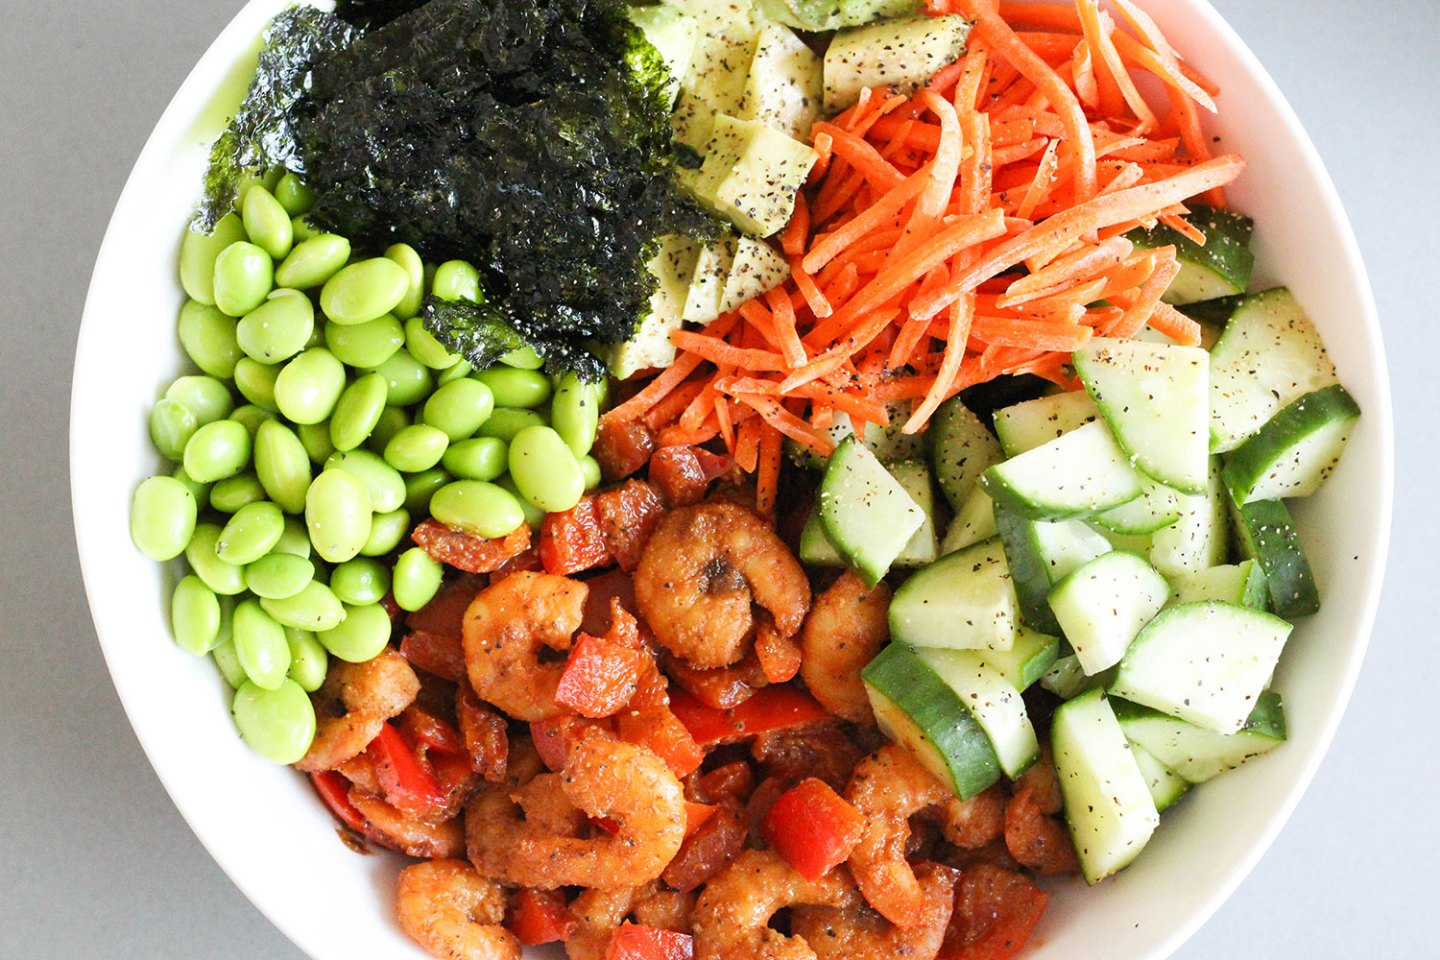 Spicy Shrimp Poke Bowl with Brown Rice (gluten-free, dairy-free)